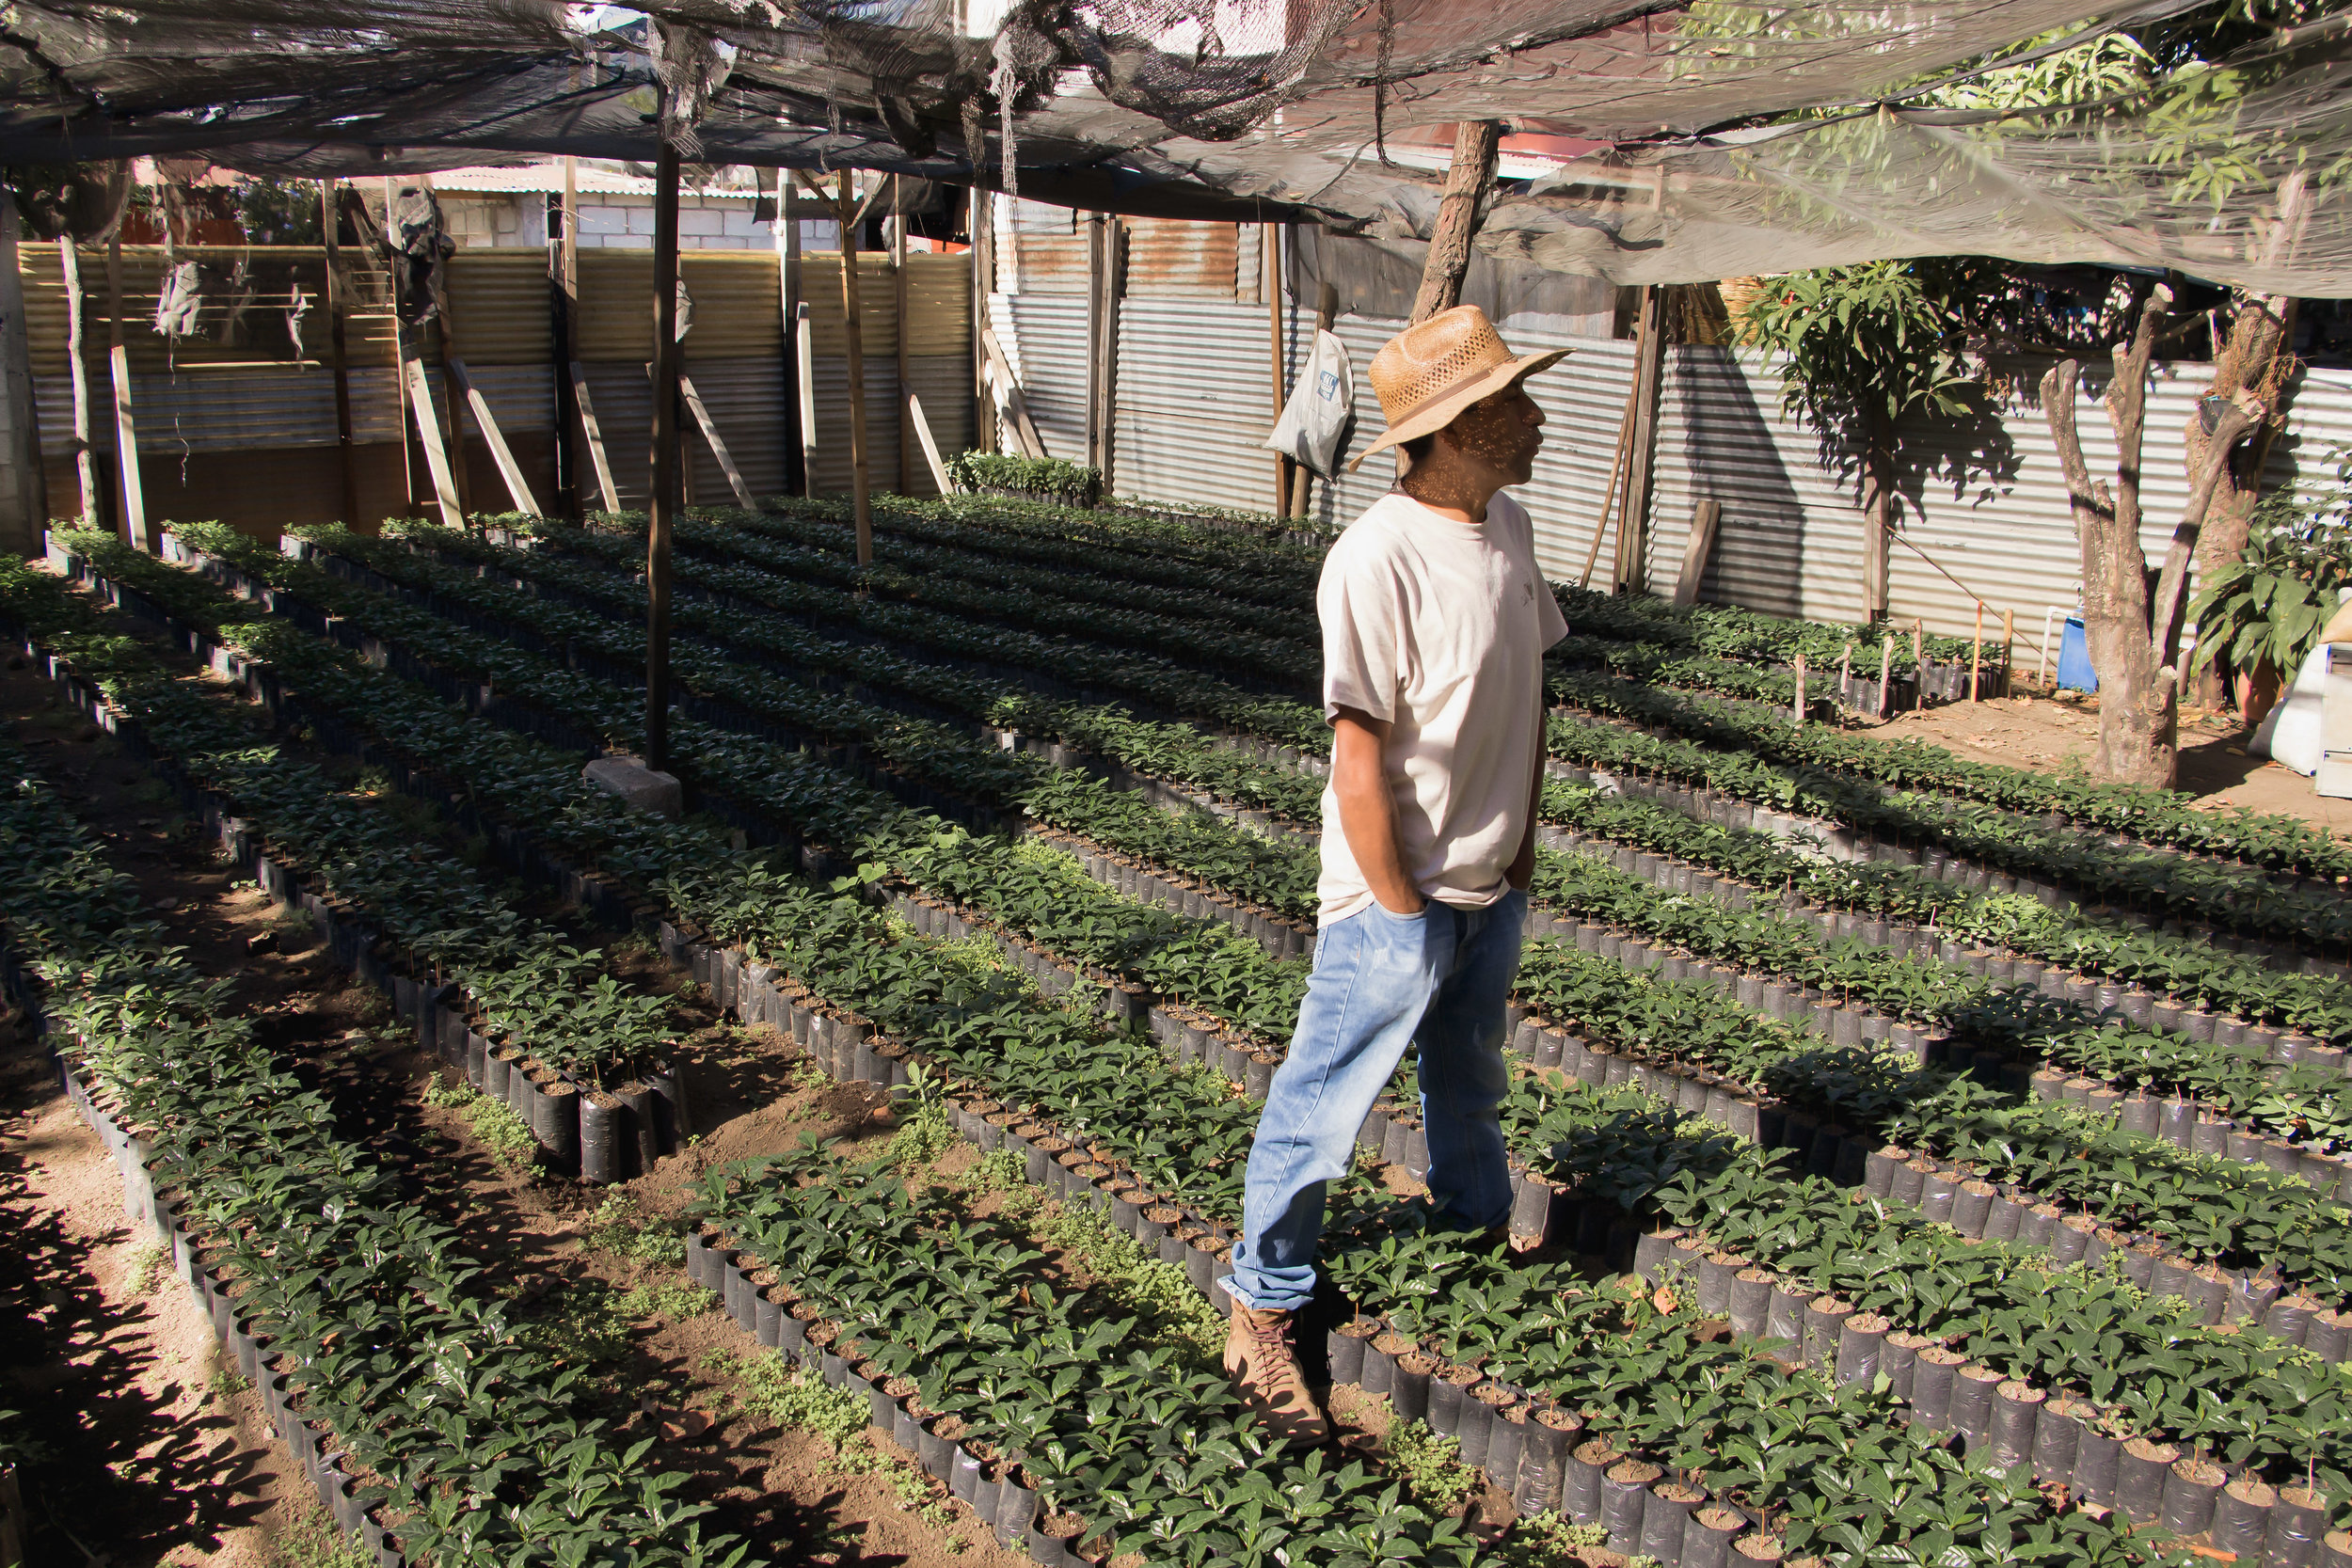 FELIX PORÓN MEDIO STANDS IN BETWEEN ROWS OF HIS INFANT COFFEE PLANTS IN THE CITY OF SAN MIGUEL DUEÑA, GUATEMALA. PORÓN PLANTED HIS FIRST COFFEE SEED ON HIS PARENTS' FARM 20 YEARS AGO.